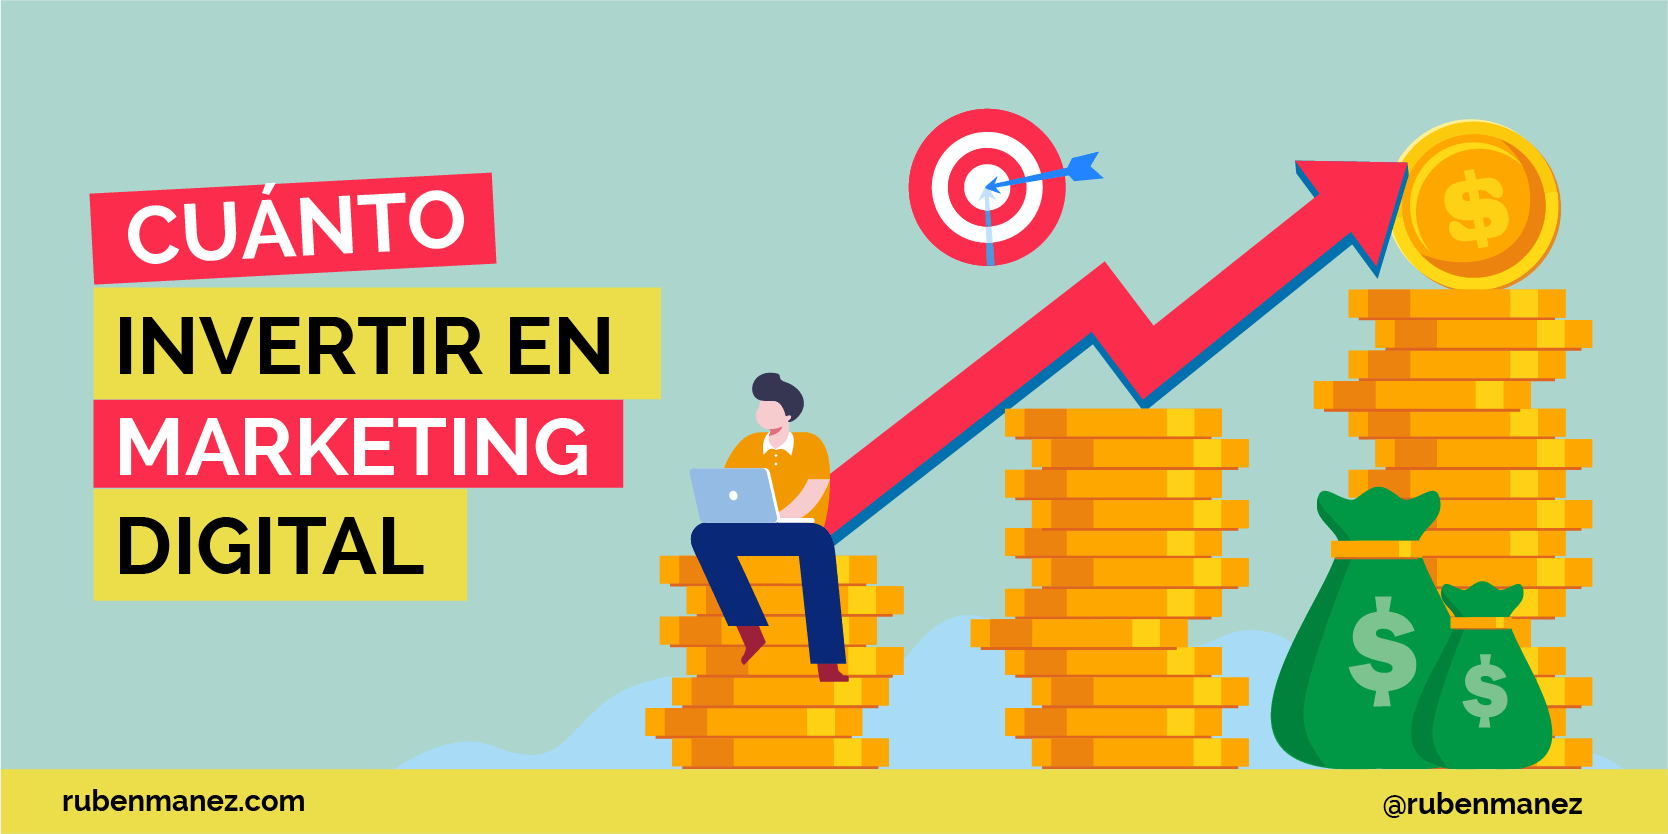 cuanto invertir en marketing digital